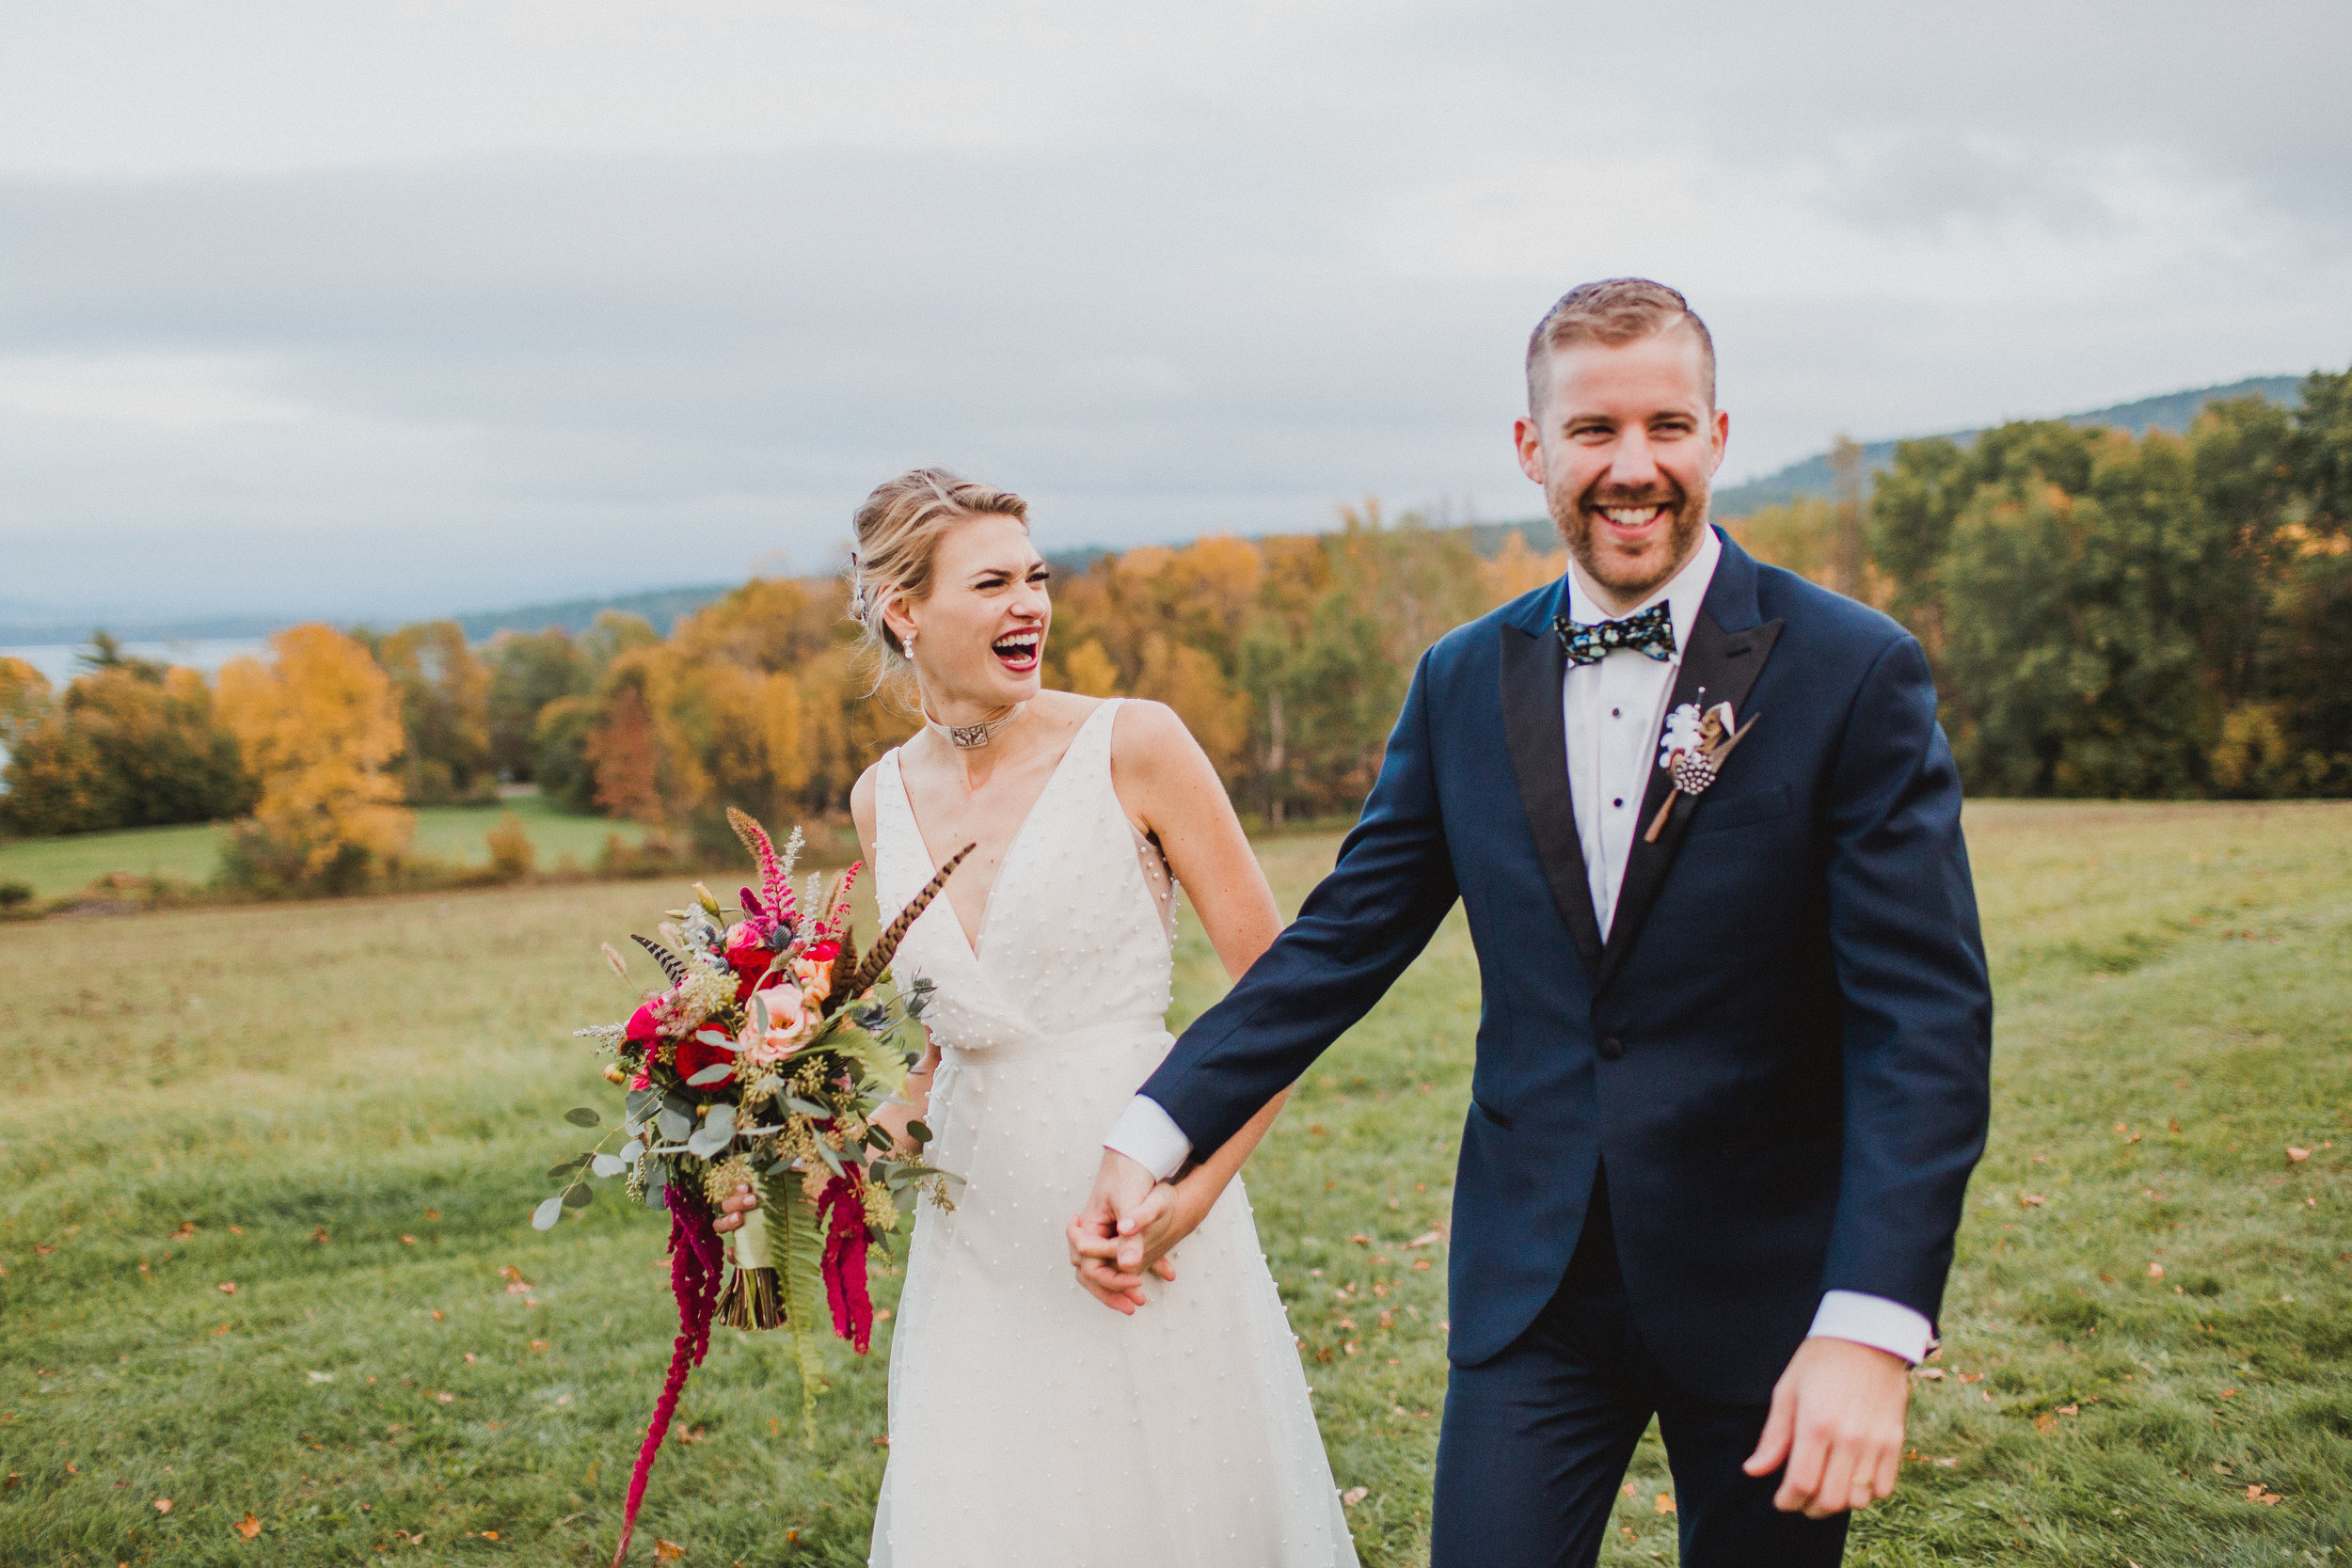 10.6.18 Lida & Brandon Wedding-629.jpg